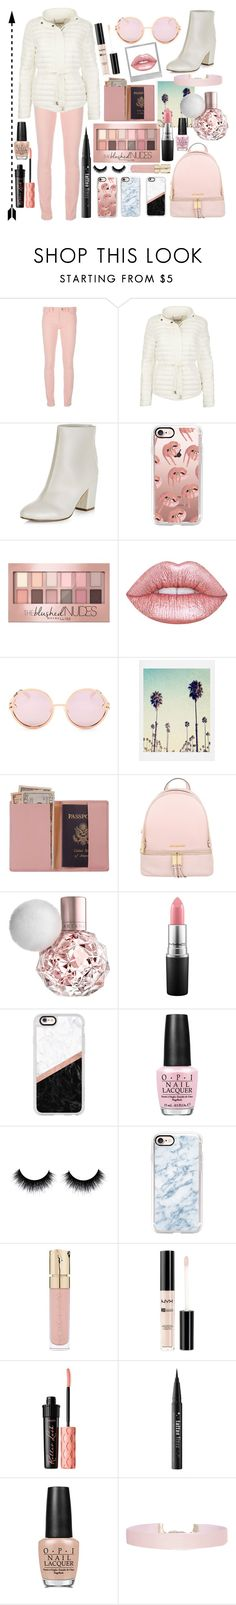 """Puffer Jacket💕"" by lara-fashion22 ❤ liked on Polyvore featuring Polaroid, Balenciaga, New Look, Casetify, Maybelline, Lime Crime, Quay, Royce Leather, MICHAEL Michael Kors and MAC Cosmetics"